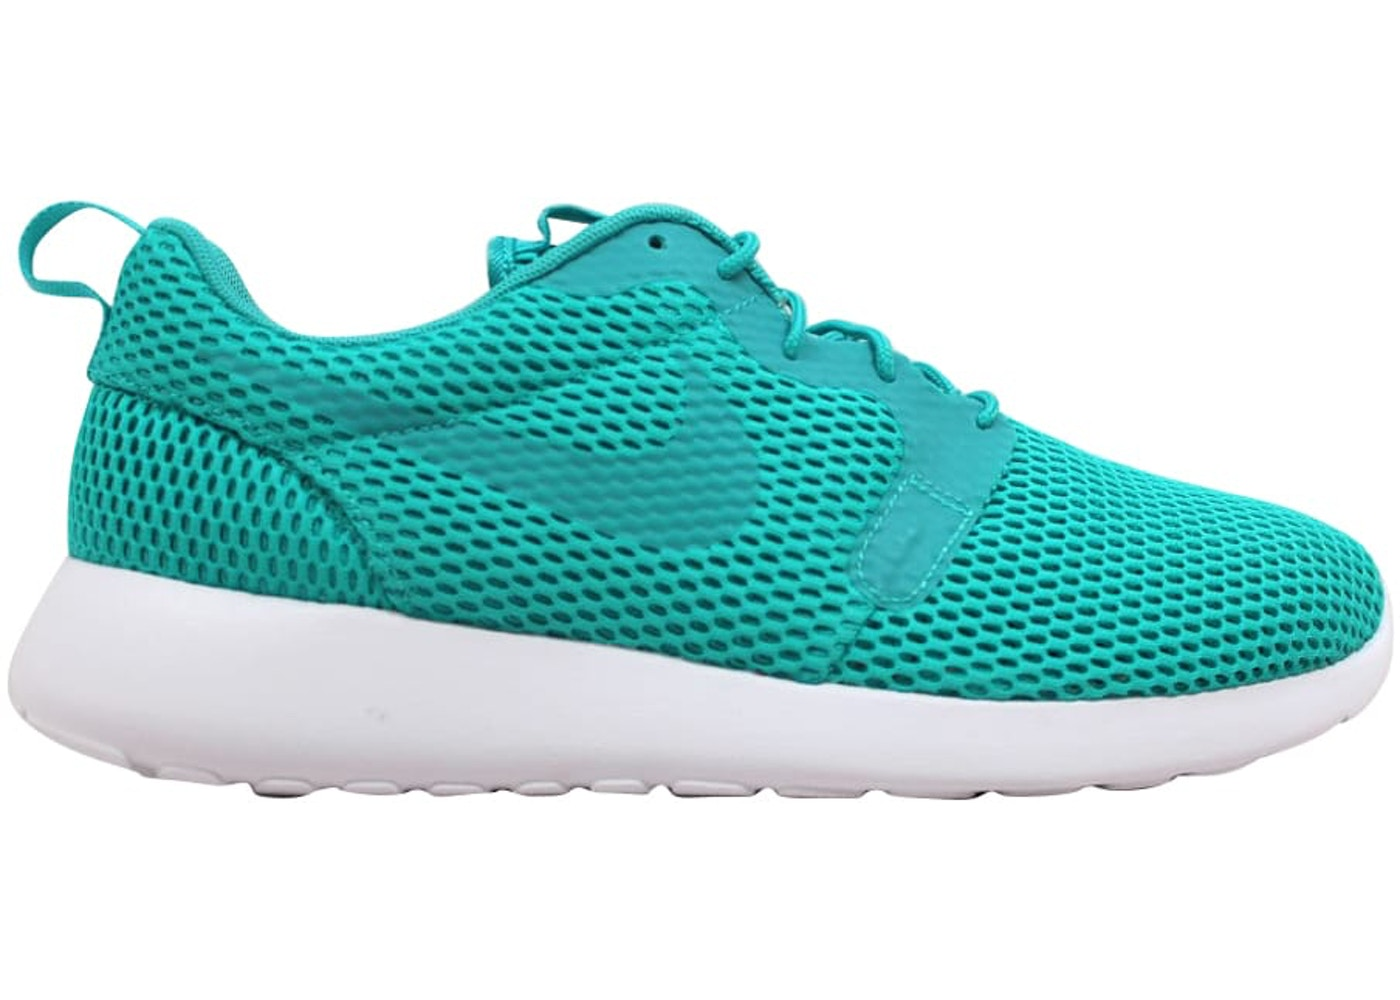 busto homosexual Vibrar  Nike Roshe One Hyp Br Clear Jade/Clear Jade-White - 833125-300